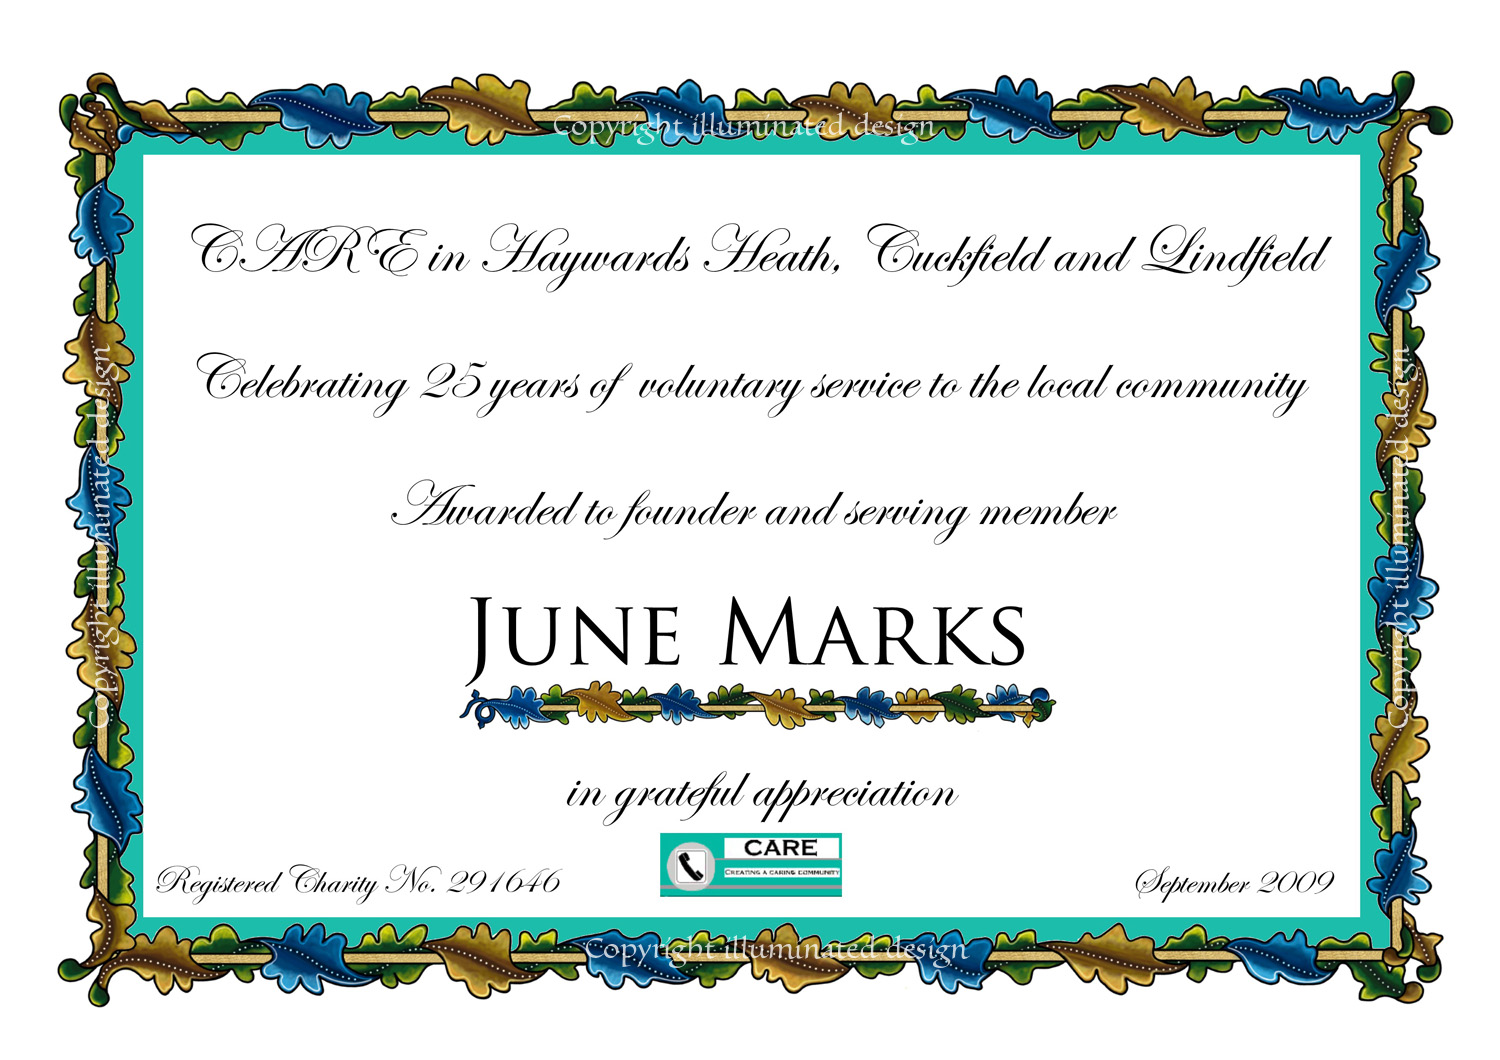 Care long service award certificate yelopaper Image collections